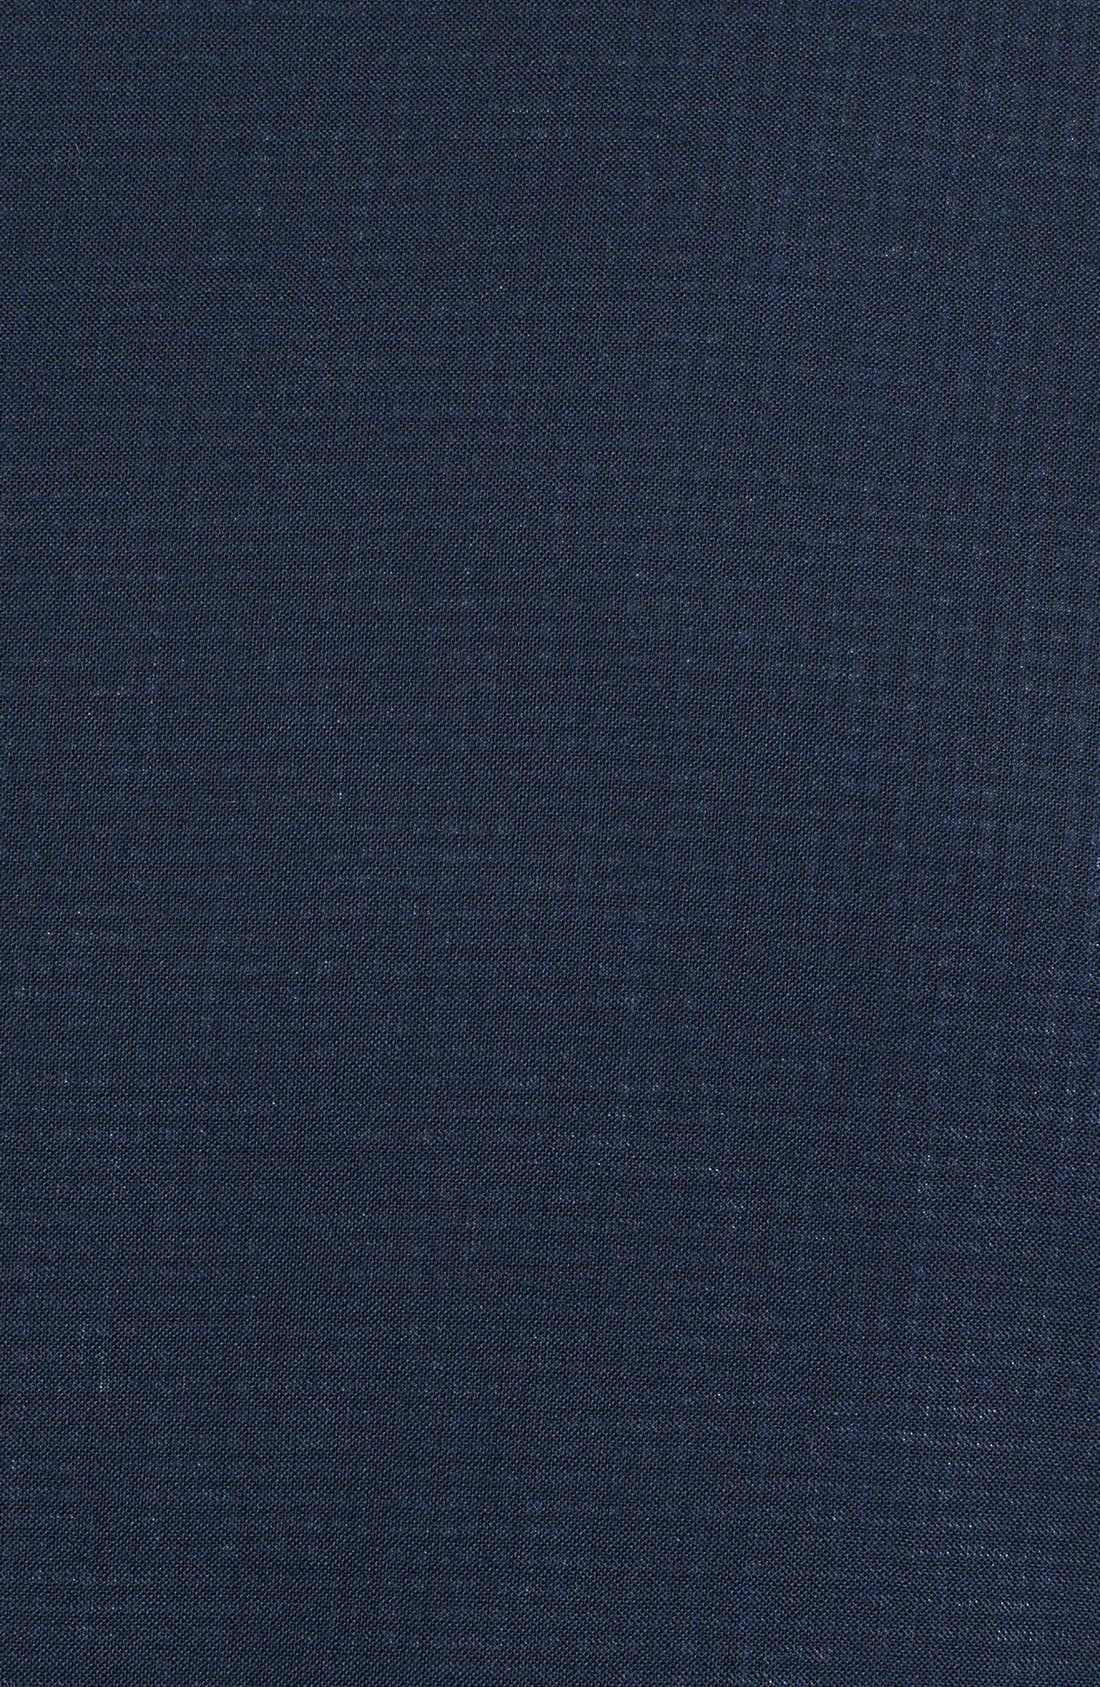 Alternate Image 3  - 2BSV NAVY GINGHAM SPORTCOAT